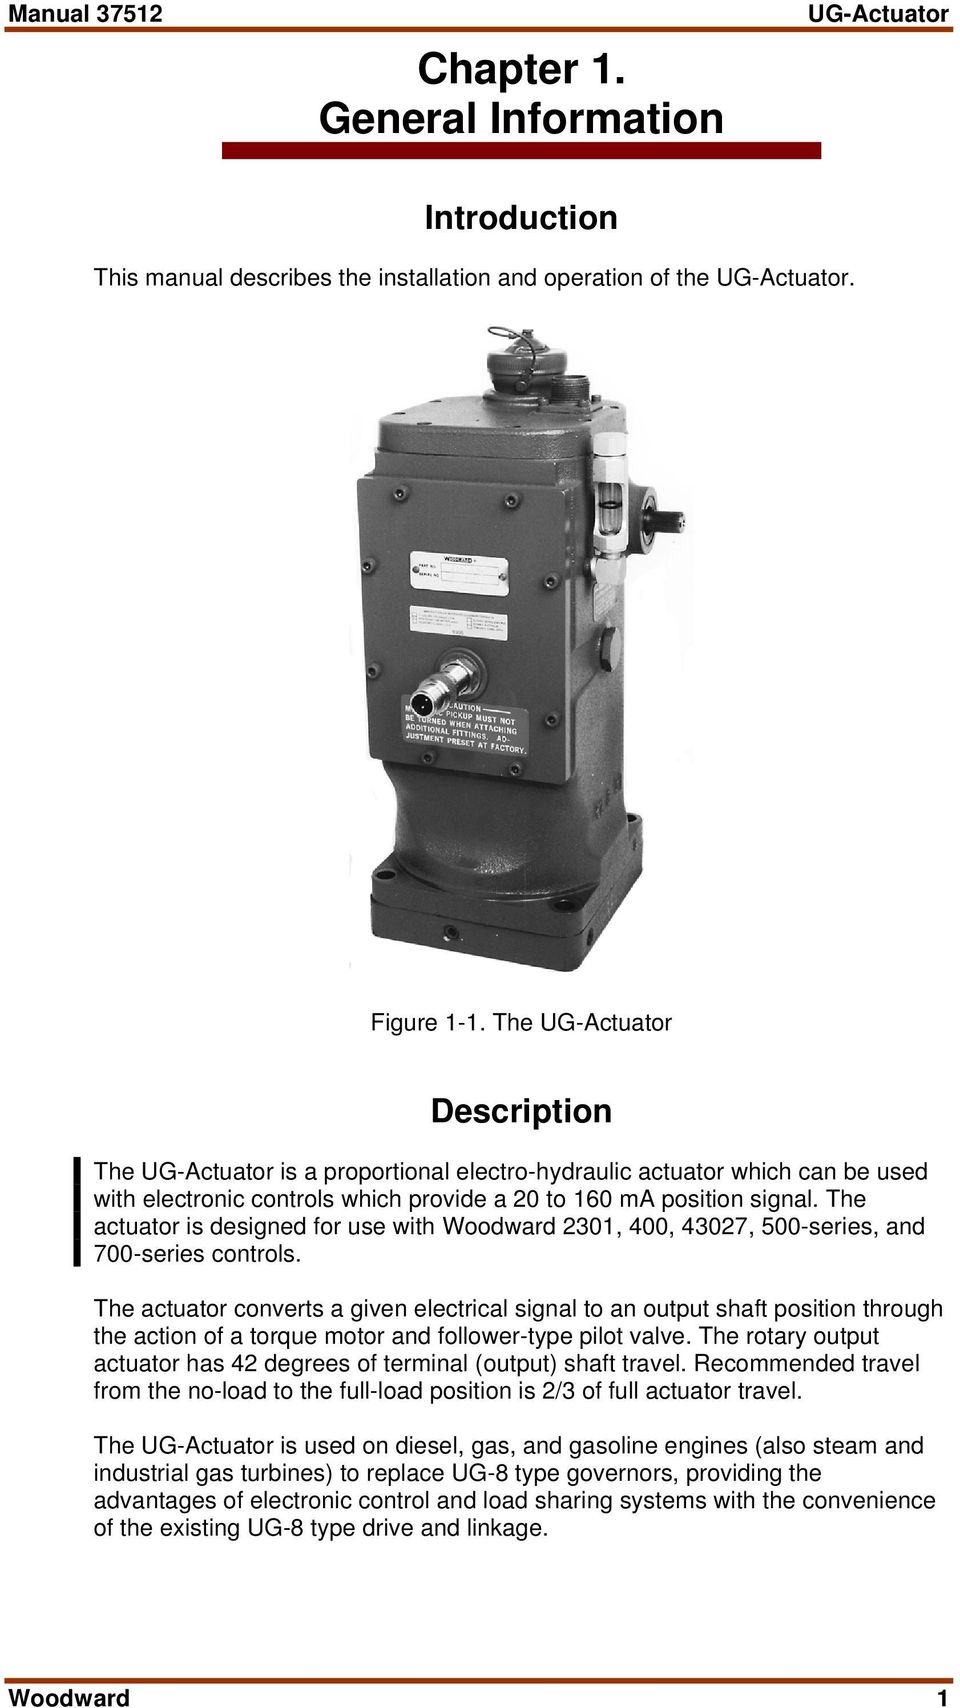 The actuator is designed for use with Woodward 2301, 400, 43027, 500-